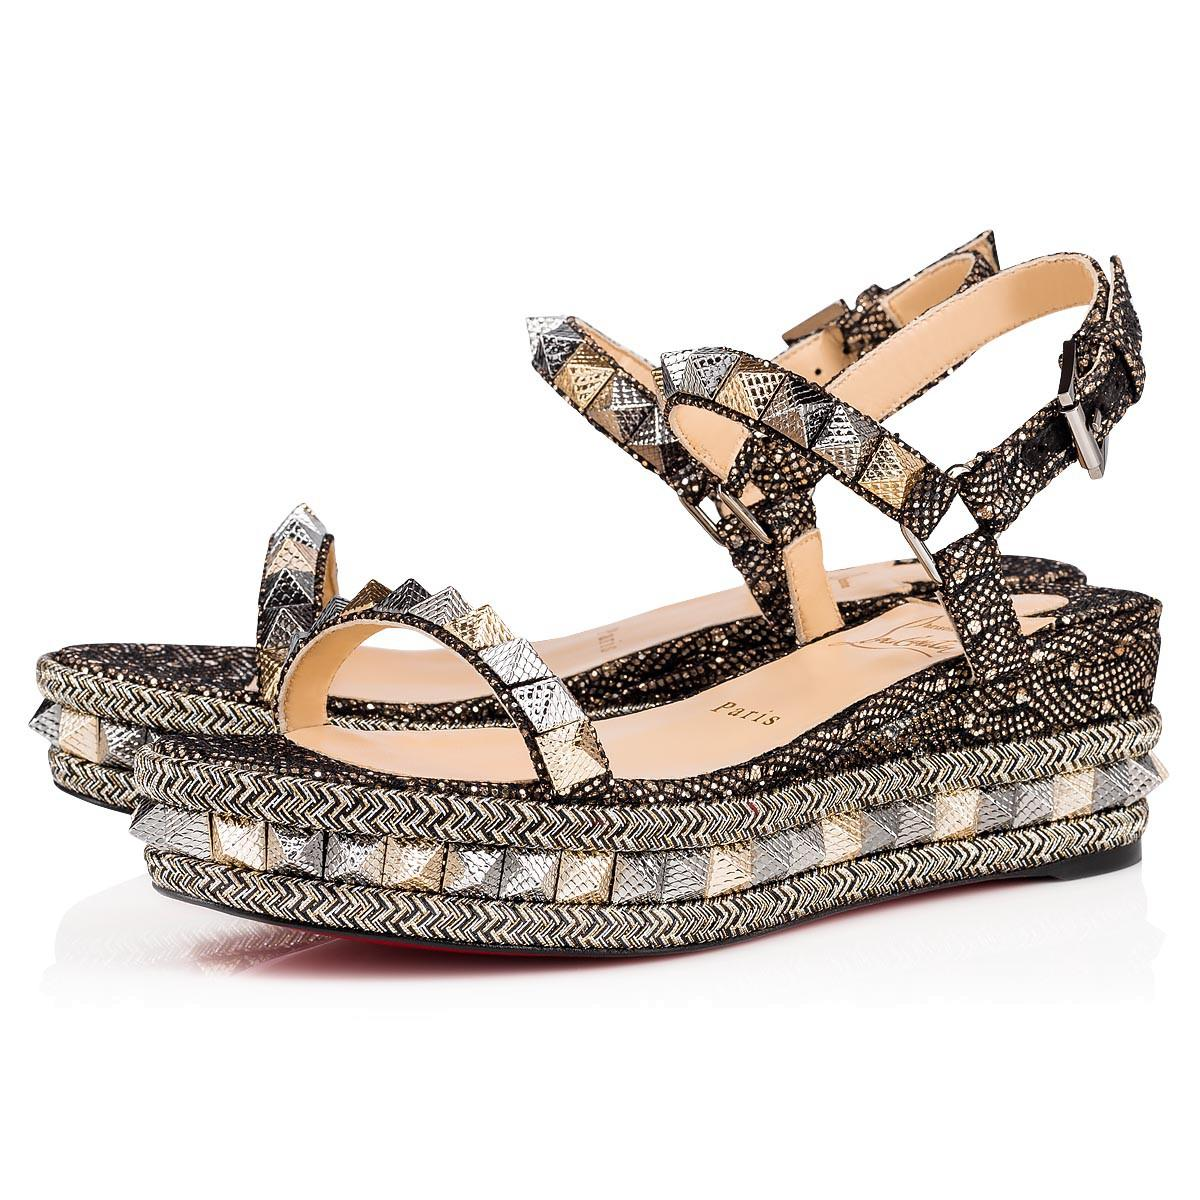 dfc3af6ae1a Pyraclou 60 Leather Flatform Sandals in Black Gold